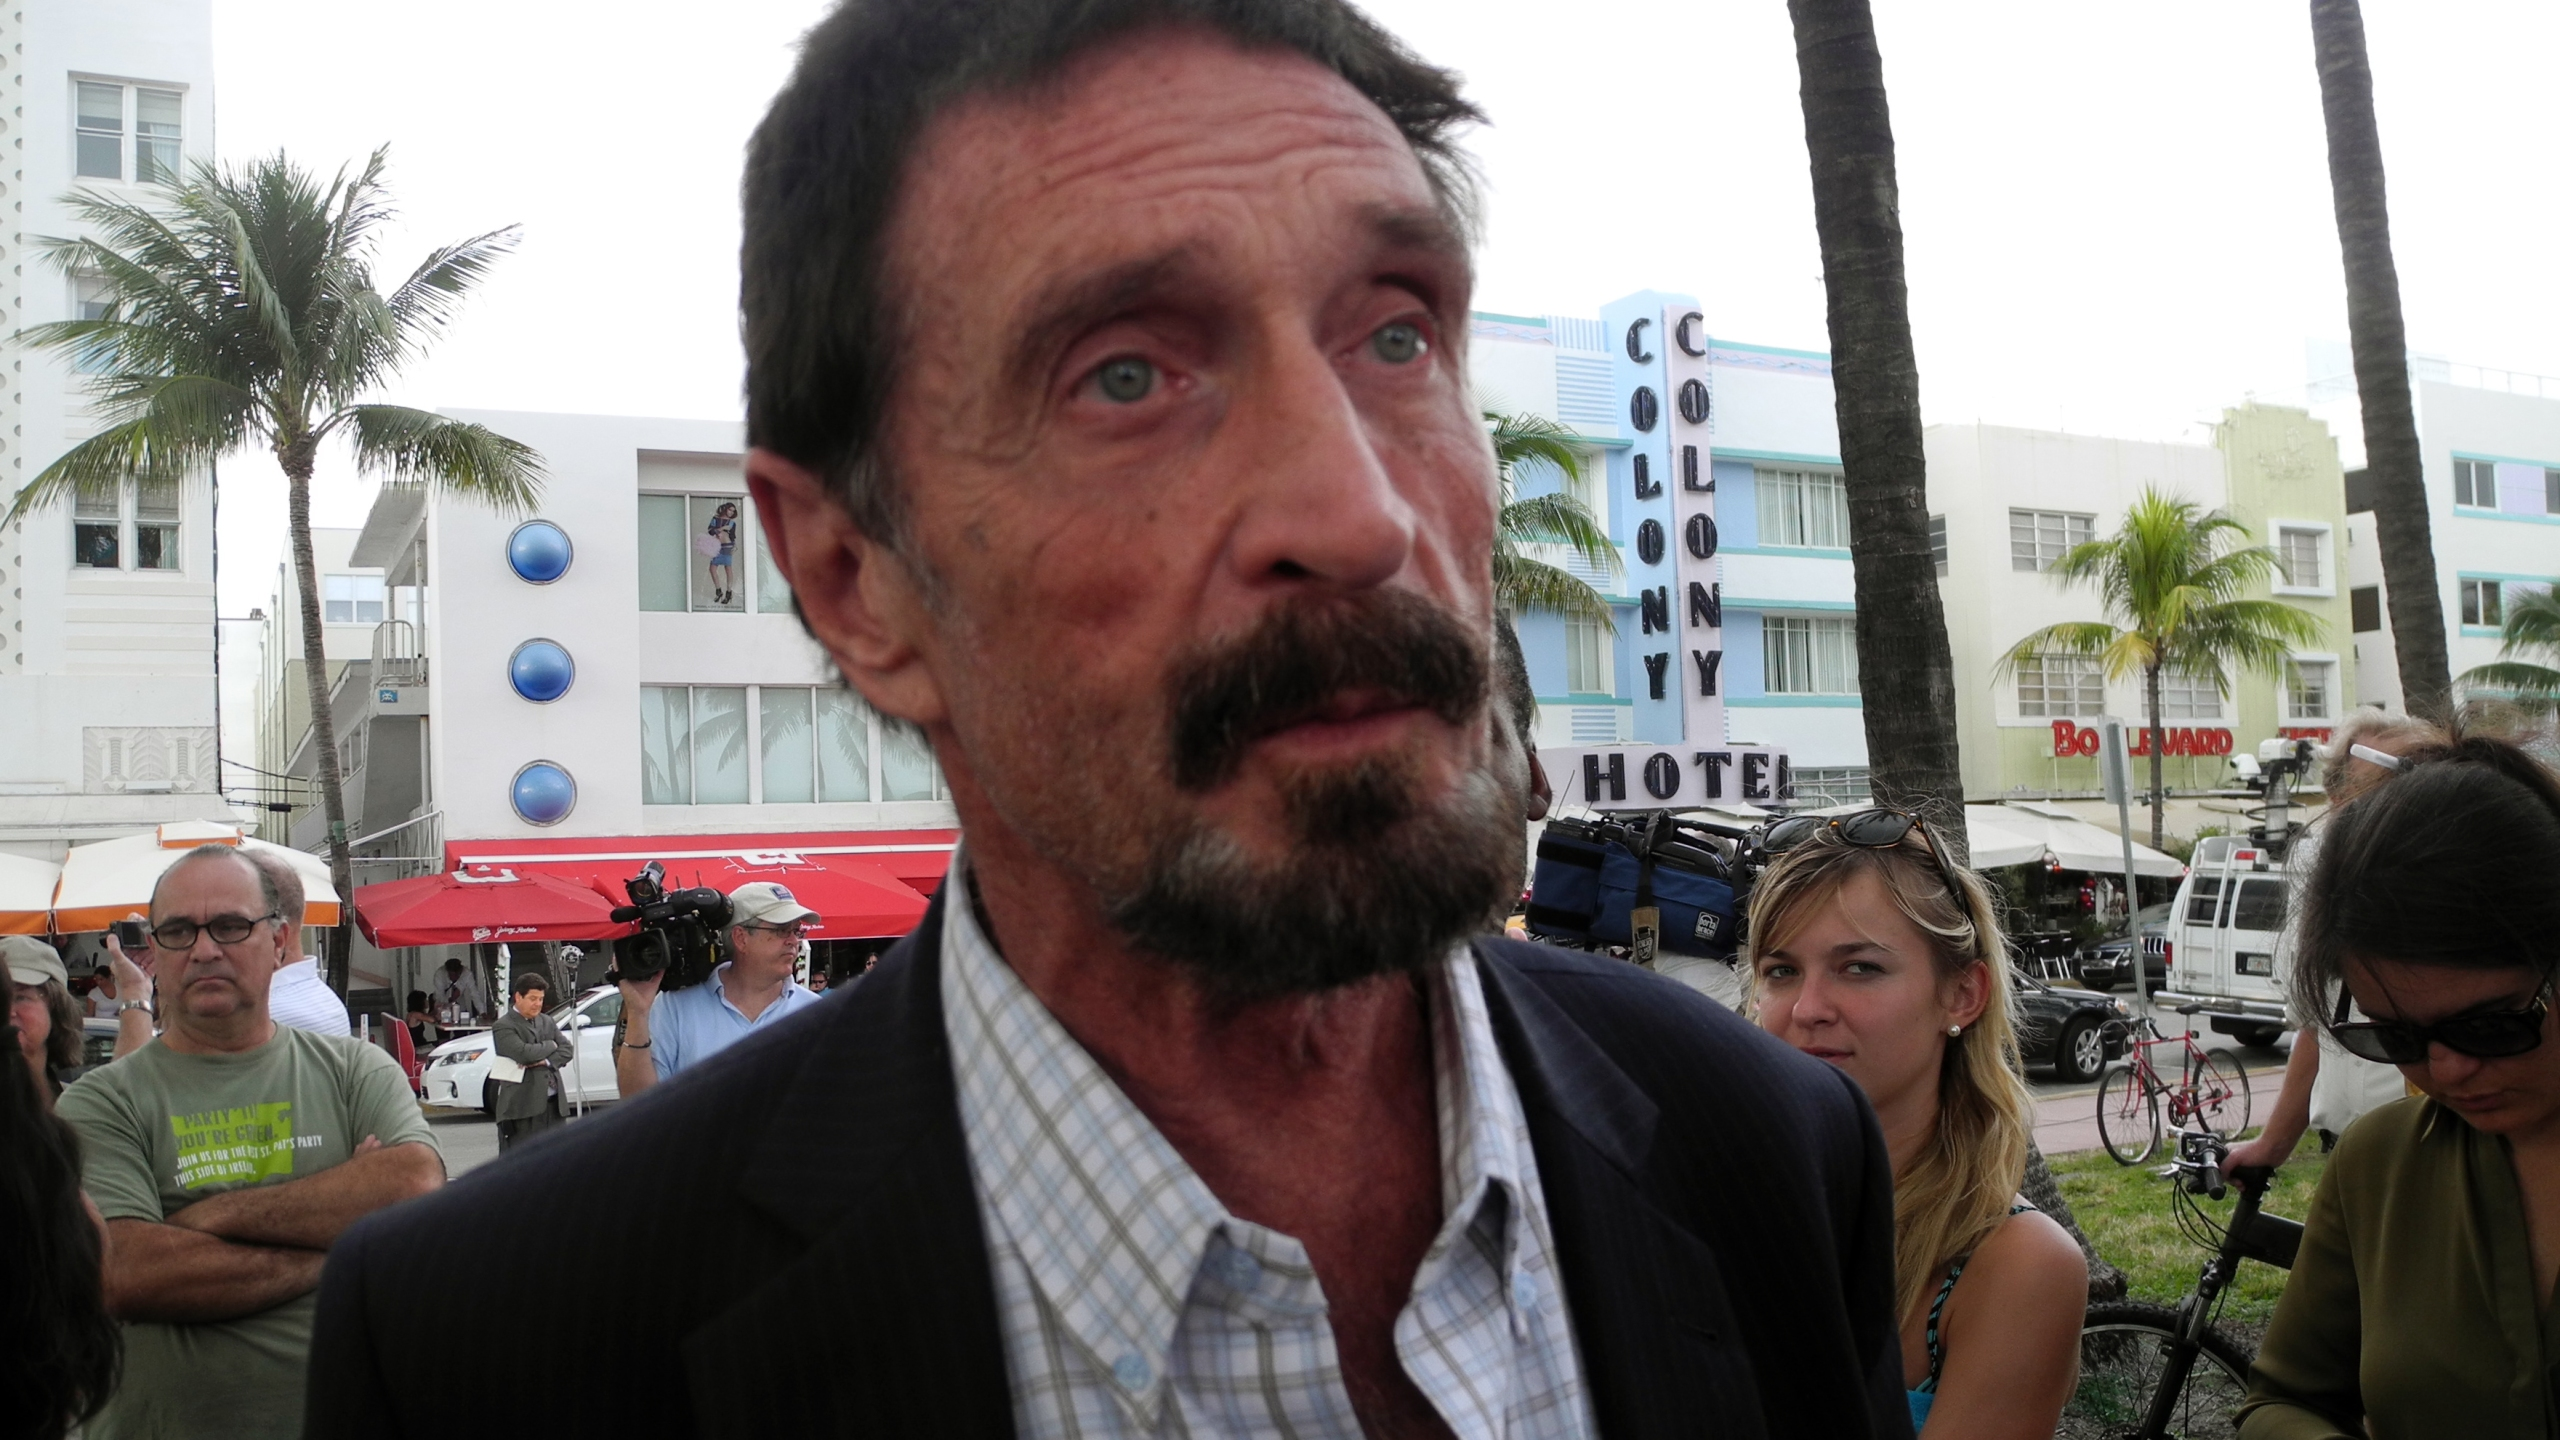 Software company founder John McAfee speaks in front of this hotel in Miami Beach, Florida on December 13, 2012, a day after being deported to US from Guatemala, where was detained for immigration violations. (Credit: PAULA BUSTAMANTE/AFP/Getty Images)